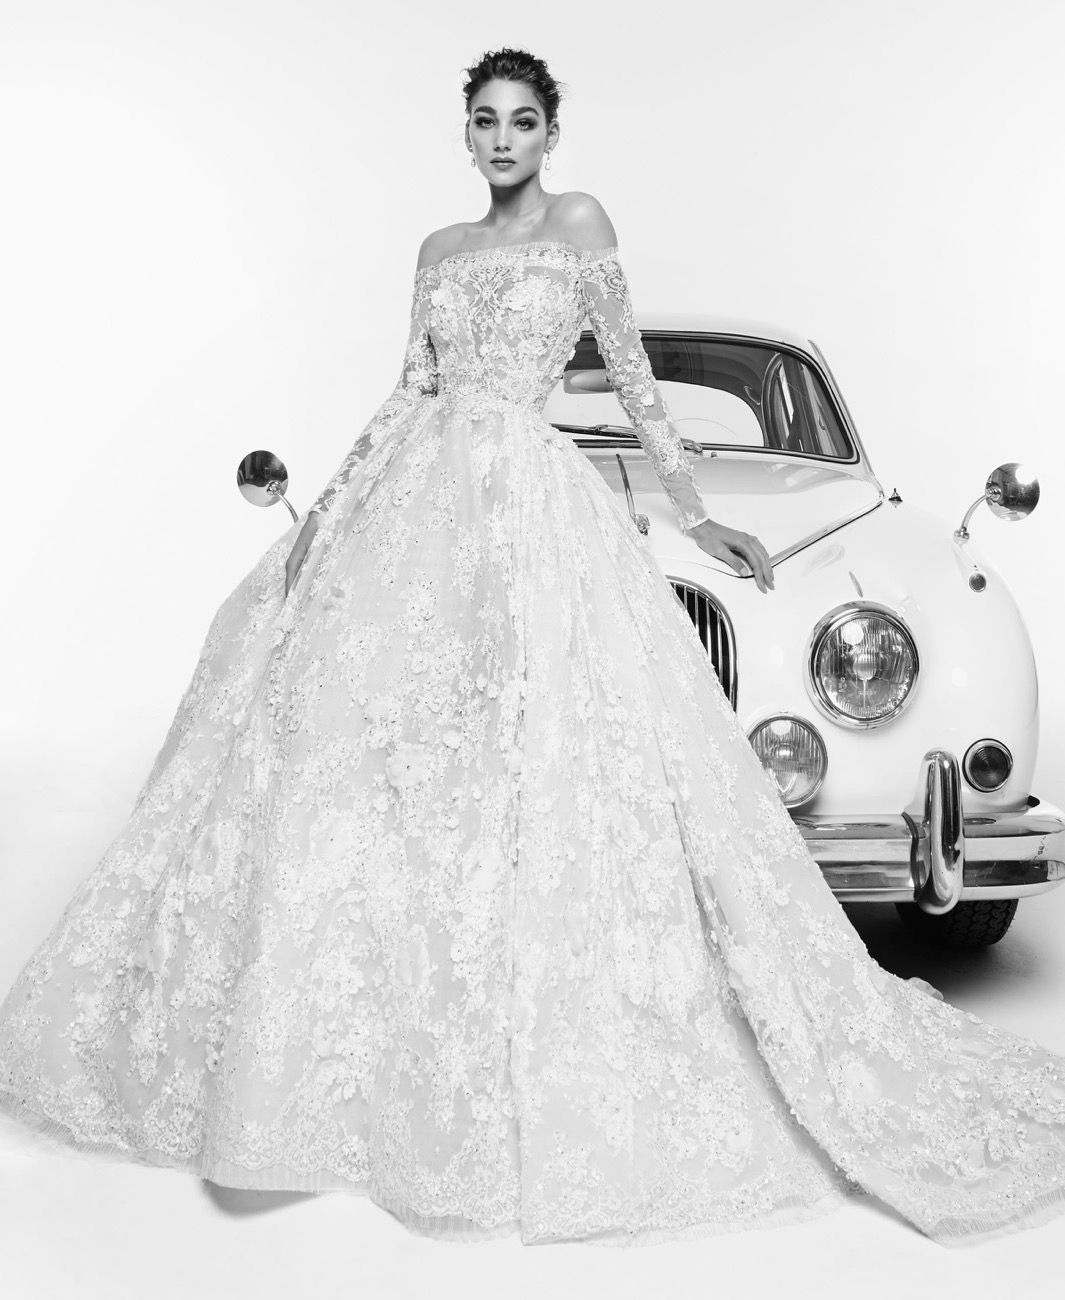 zuhair murad spring 2019 bridal collection - rafaelle